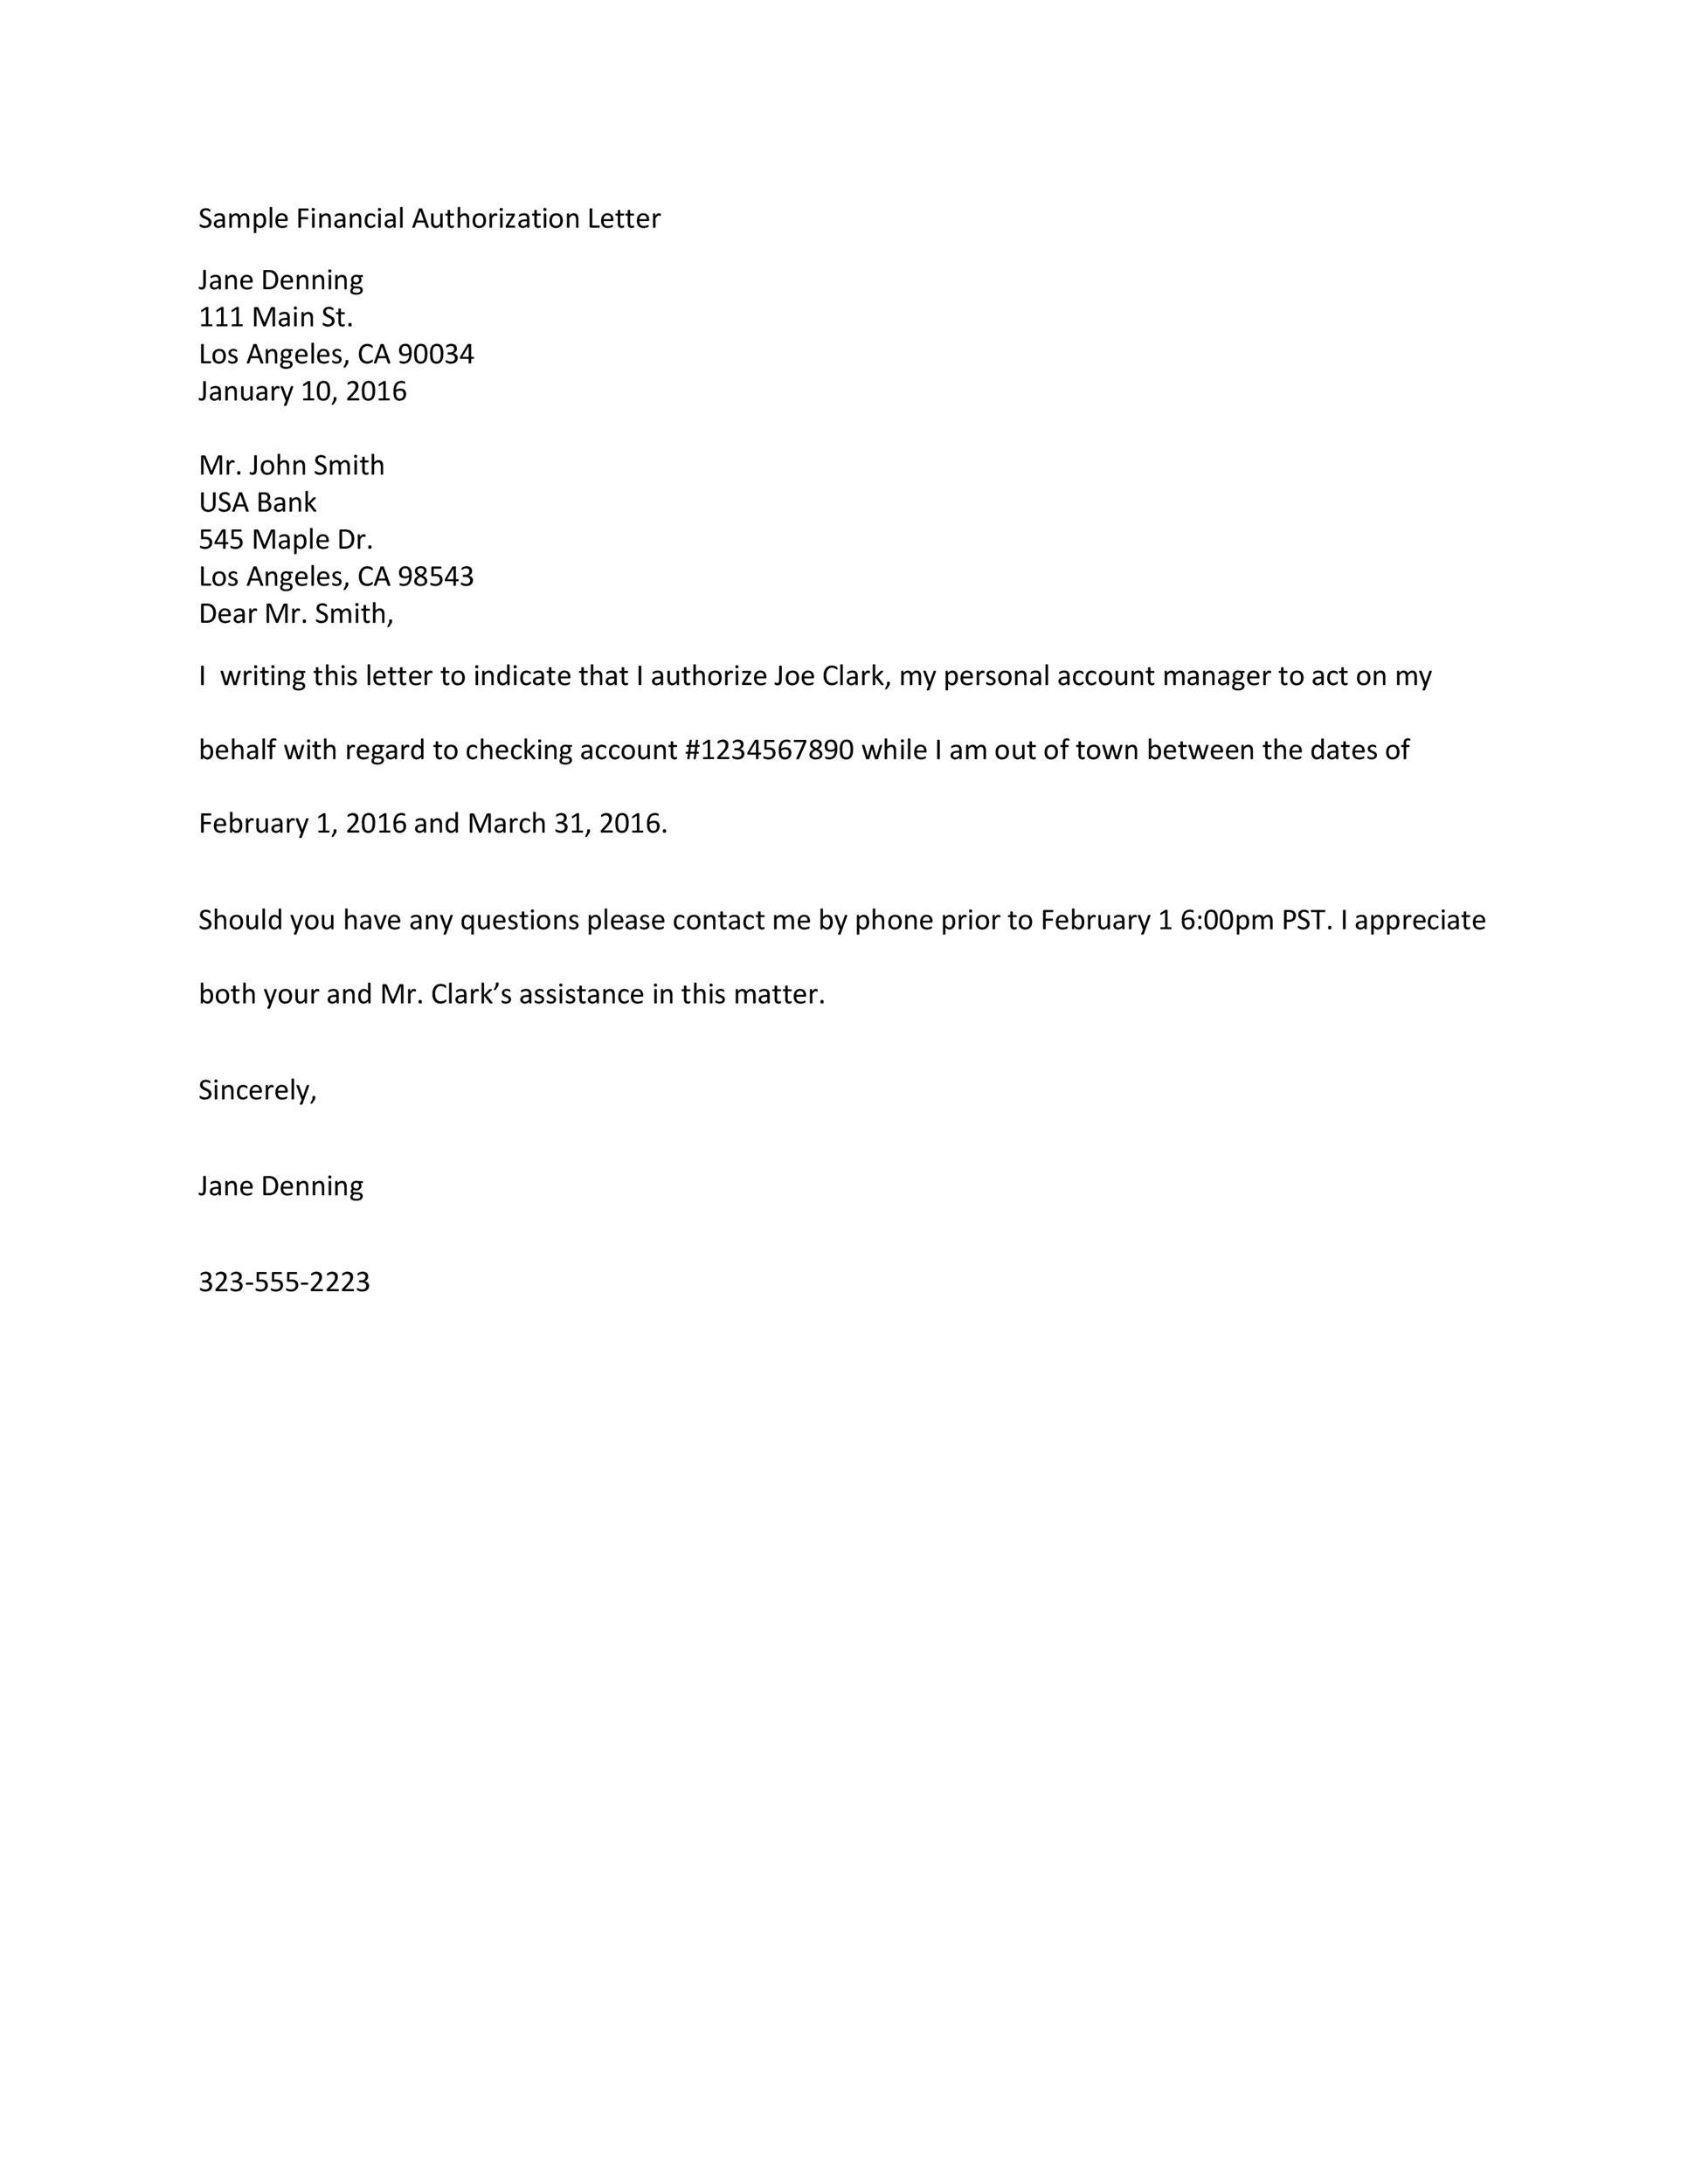 Work Authorization Letter. Pinterest'Teki 25'Den Fazla En Iyi Nso